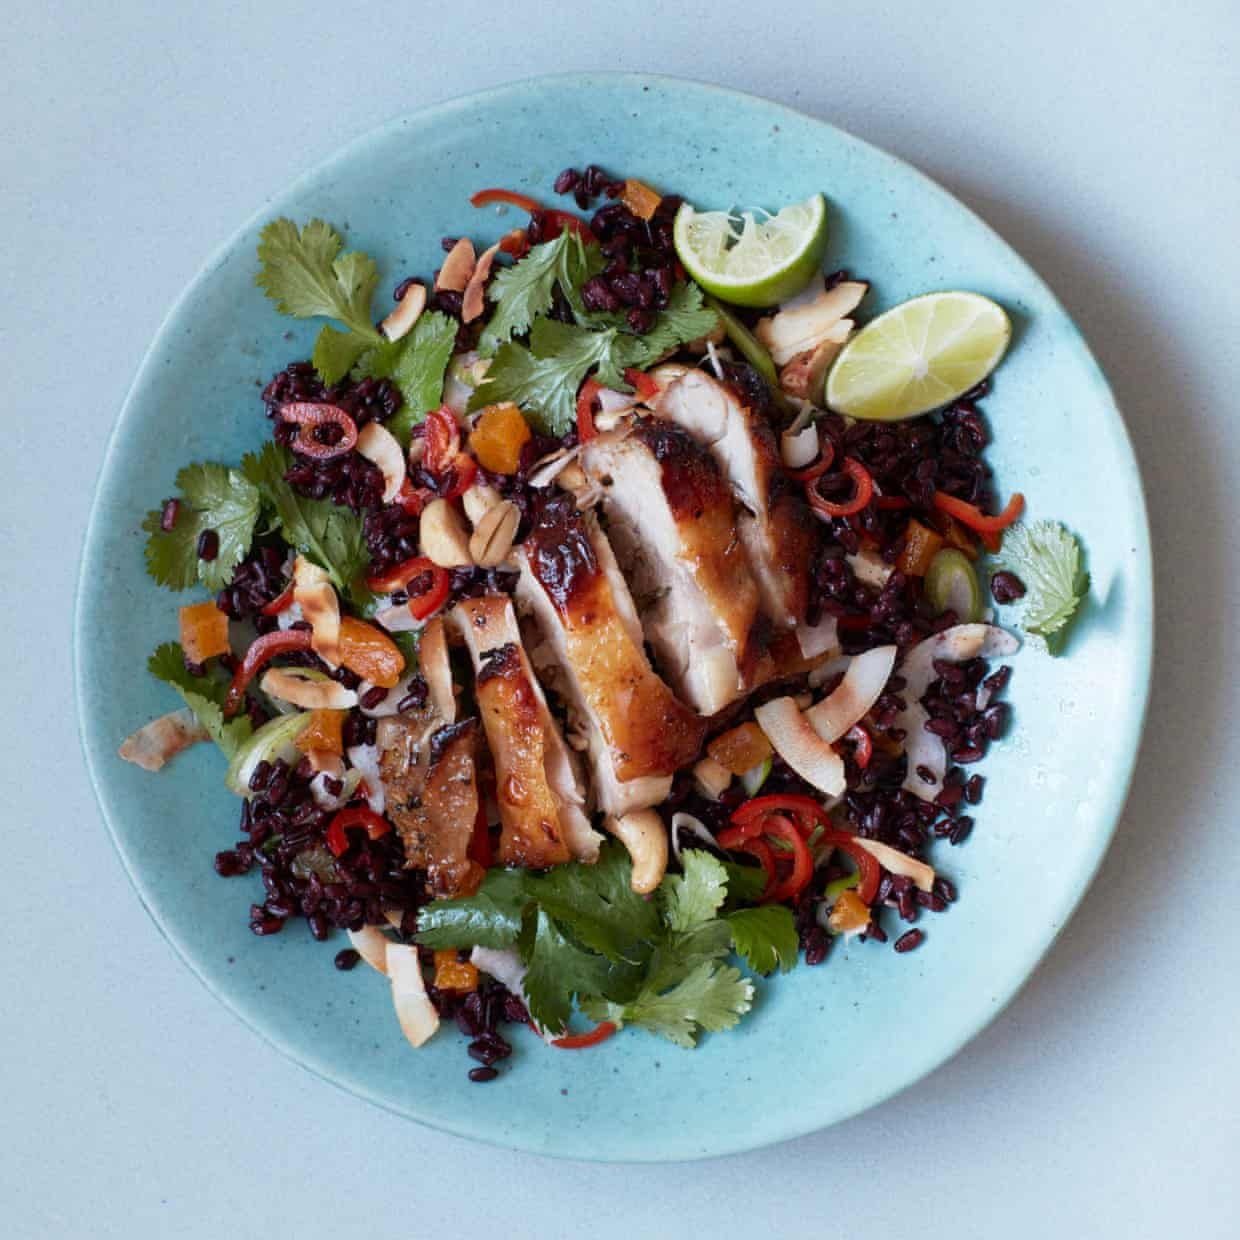 Thomasina Miers Recipe For Crispy Chicken Thighs With Black Rice Salad The Simple Fix Crispy Chicken Thighs Black Rice Salad Crispy Chicken